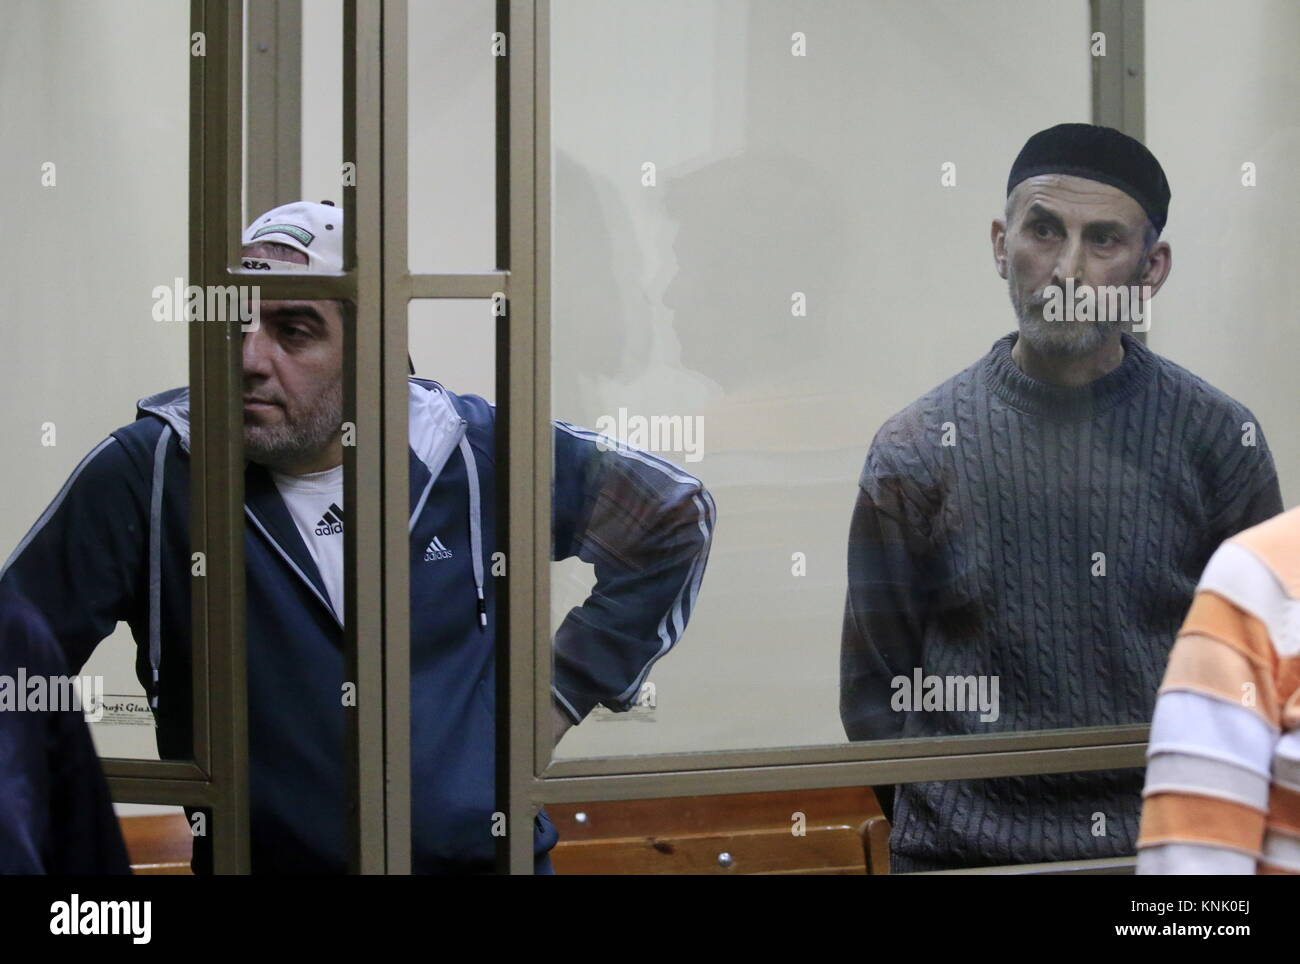 Rostov On Don, Russia. 13th Dec, 2017. Magomed Mazdayev (L) and Ramzan Belyalov, charged with taking part in a June - Stock Image